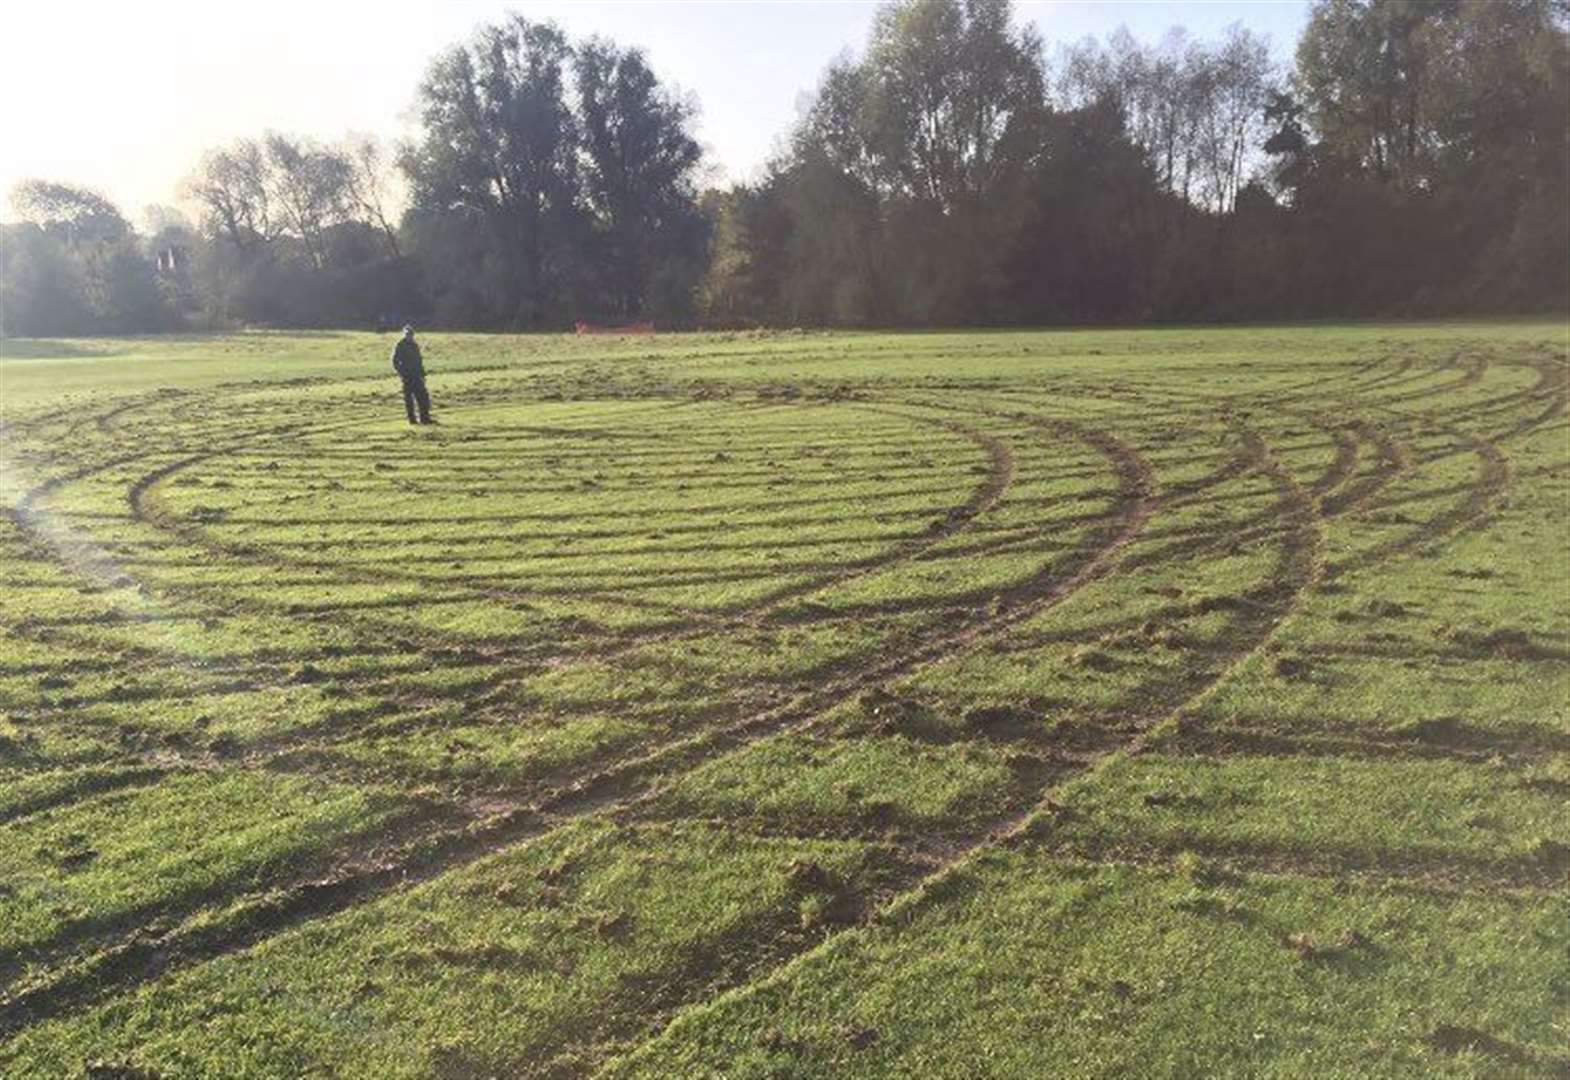 Vandals damage Southwell football pitch